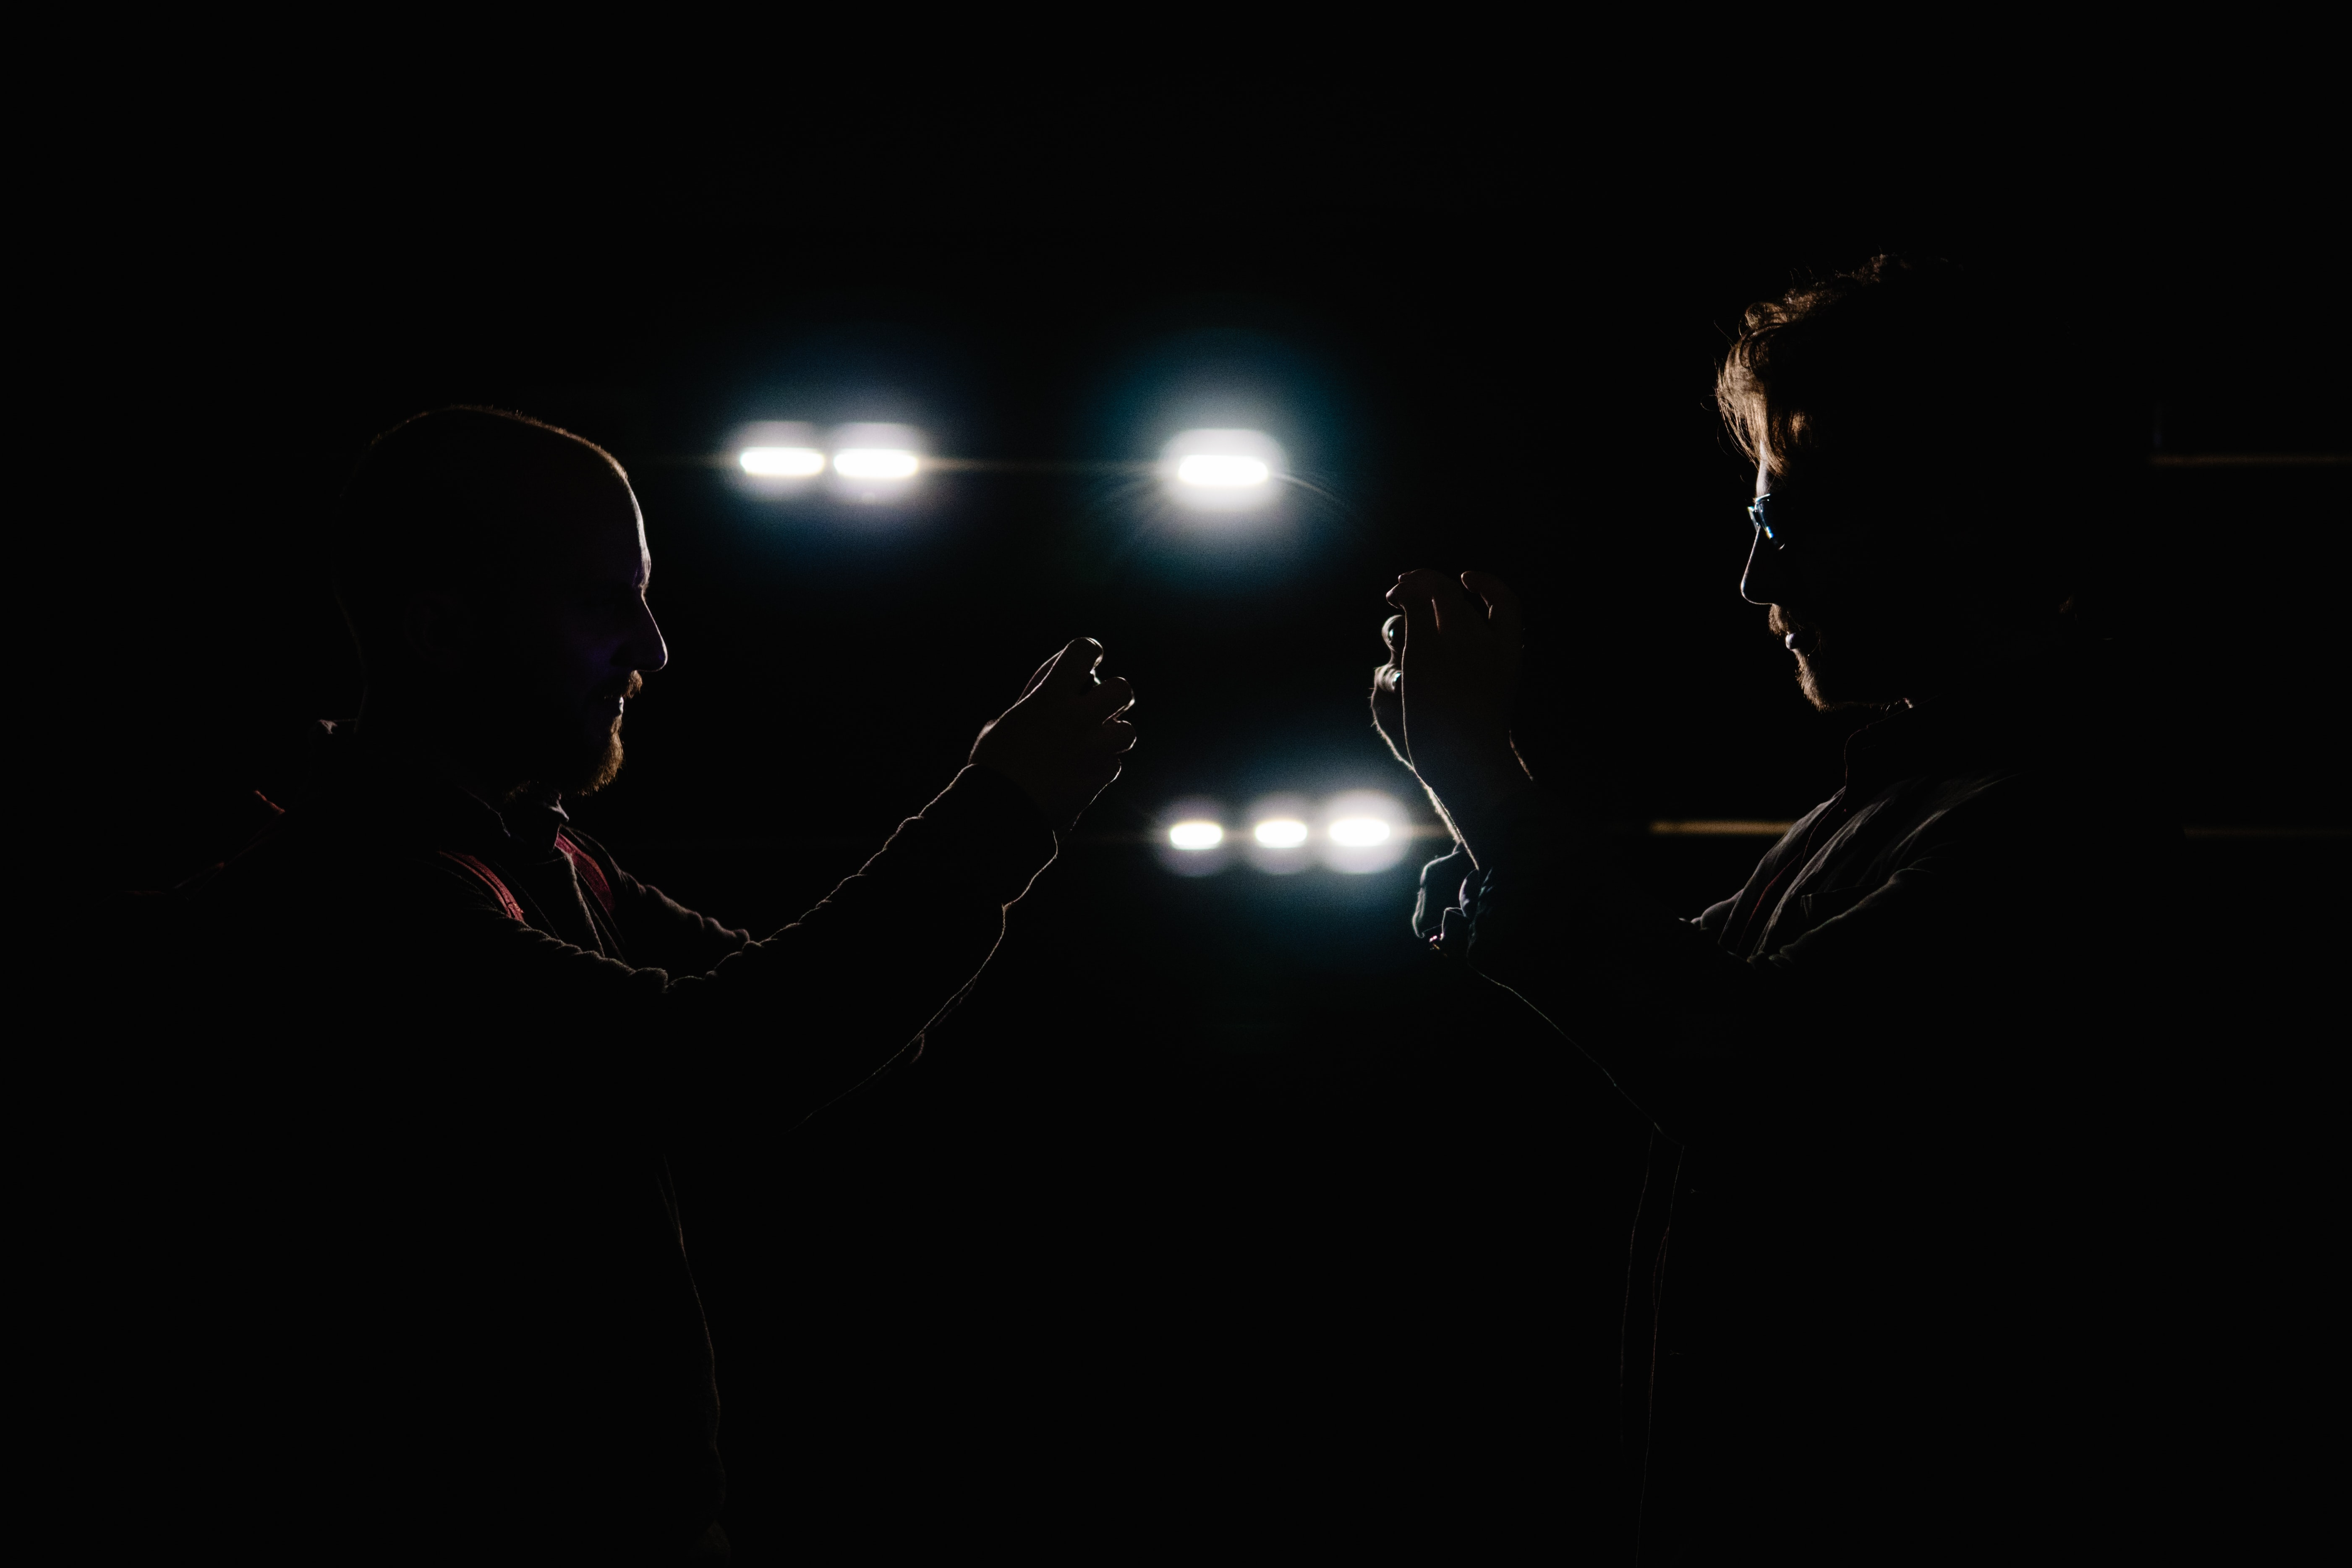 two men facing each other in a dark room